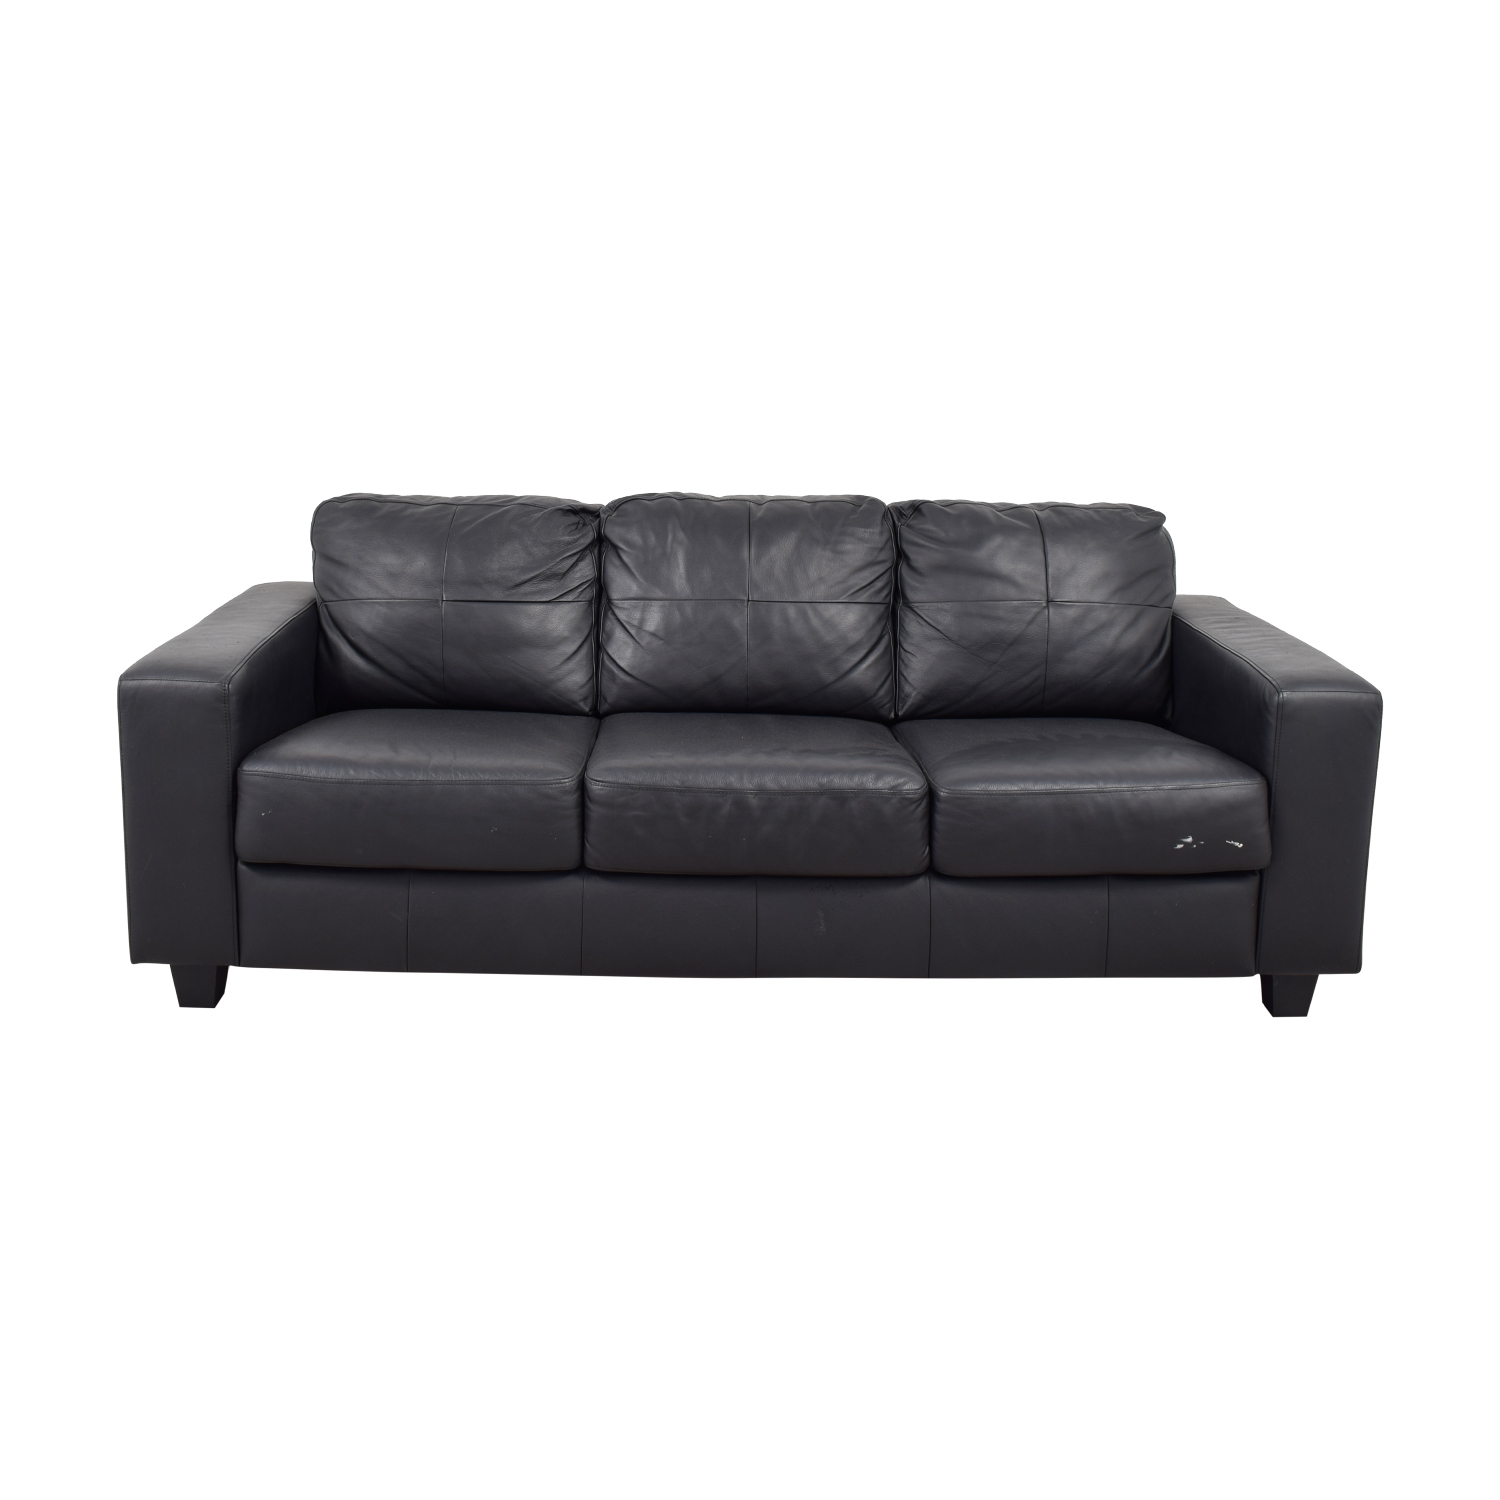 Buy Ikea Ikea Black Leather Three Cushion Sofa Online